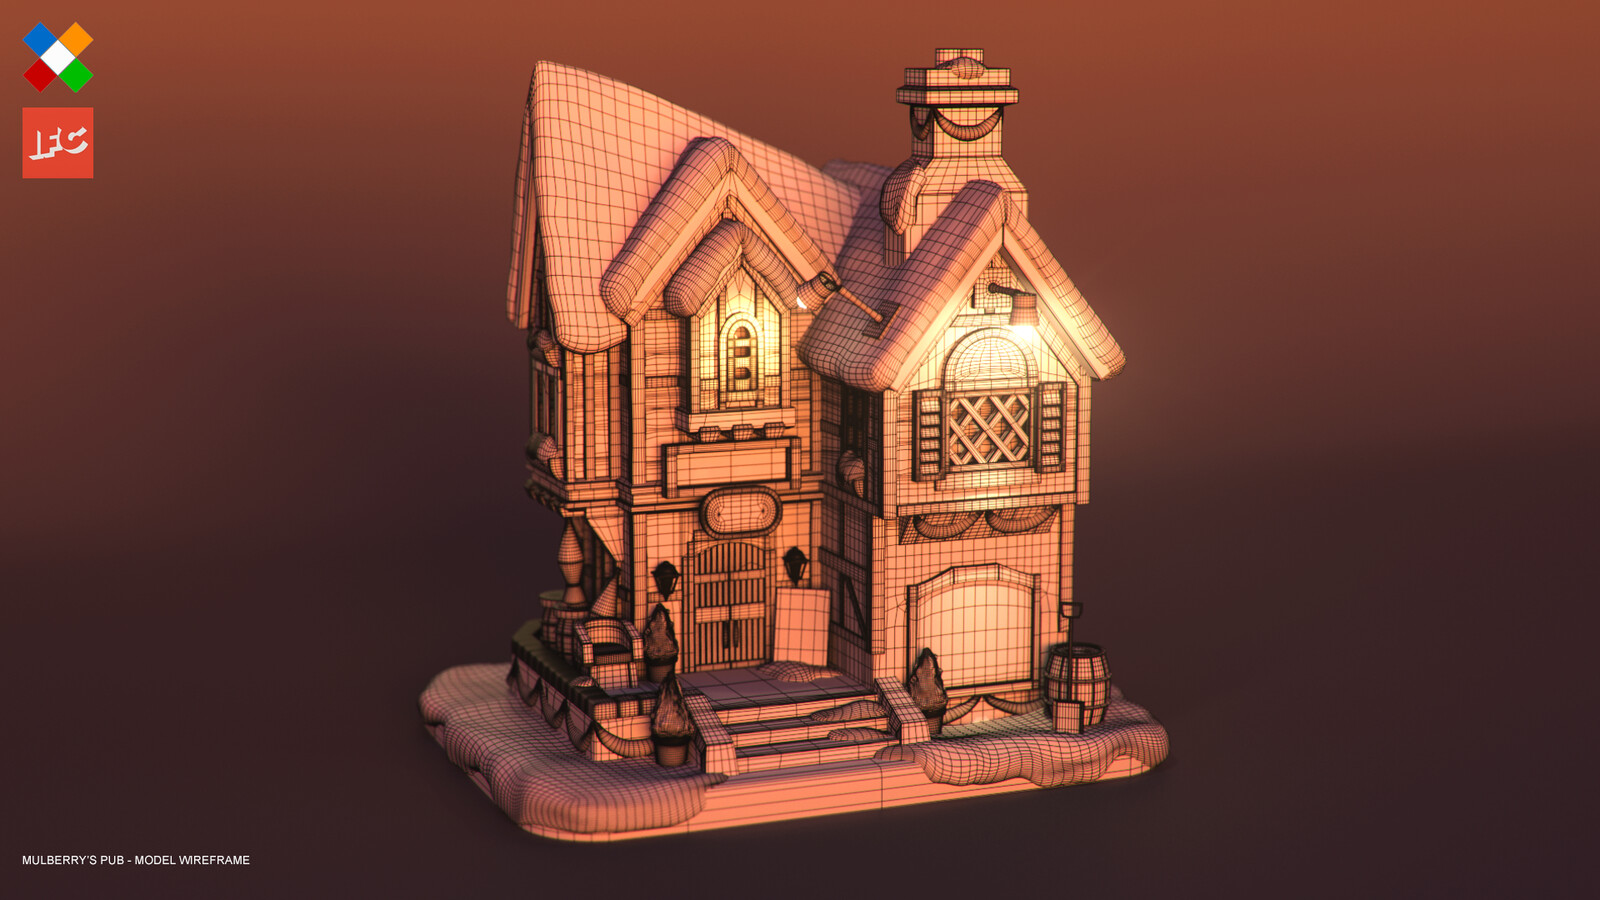 Mulberry's Pub Wireframe Render